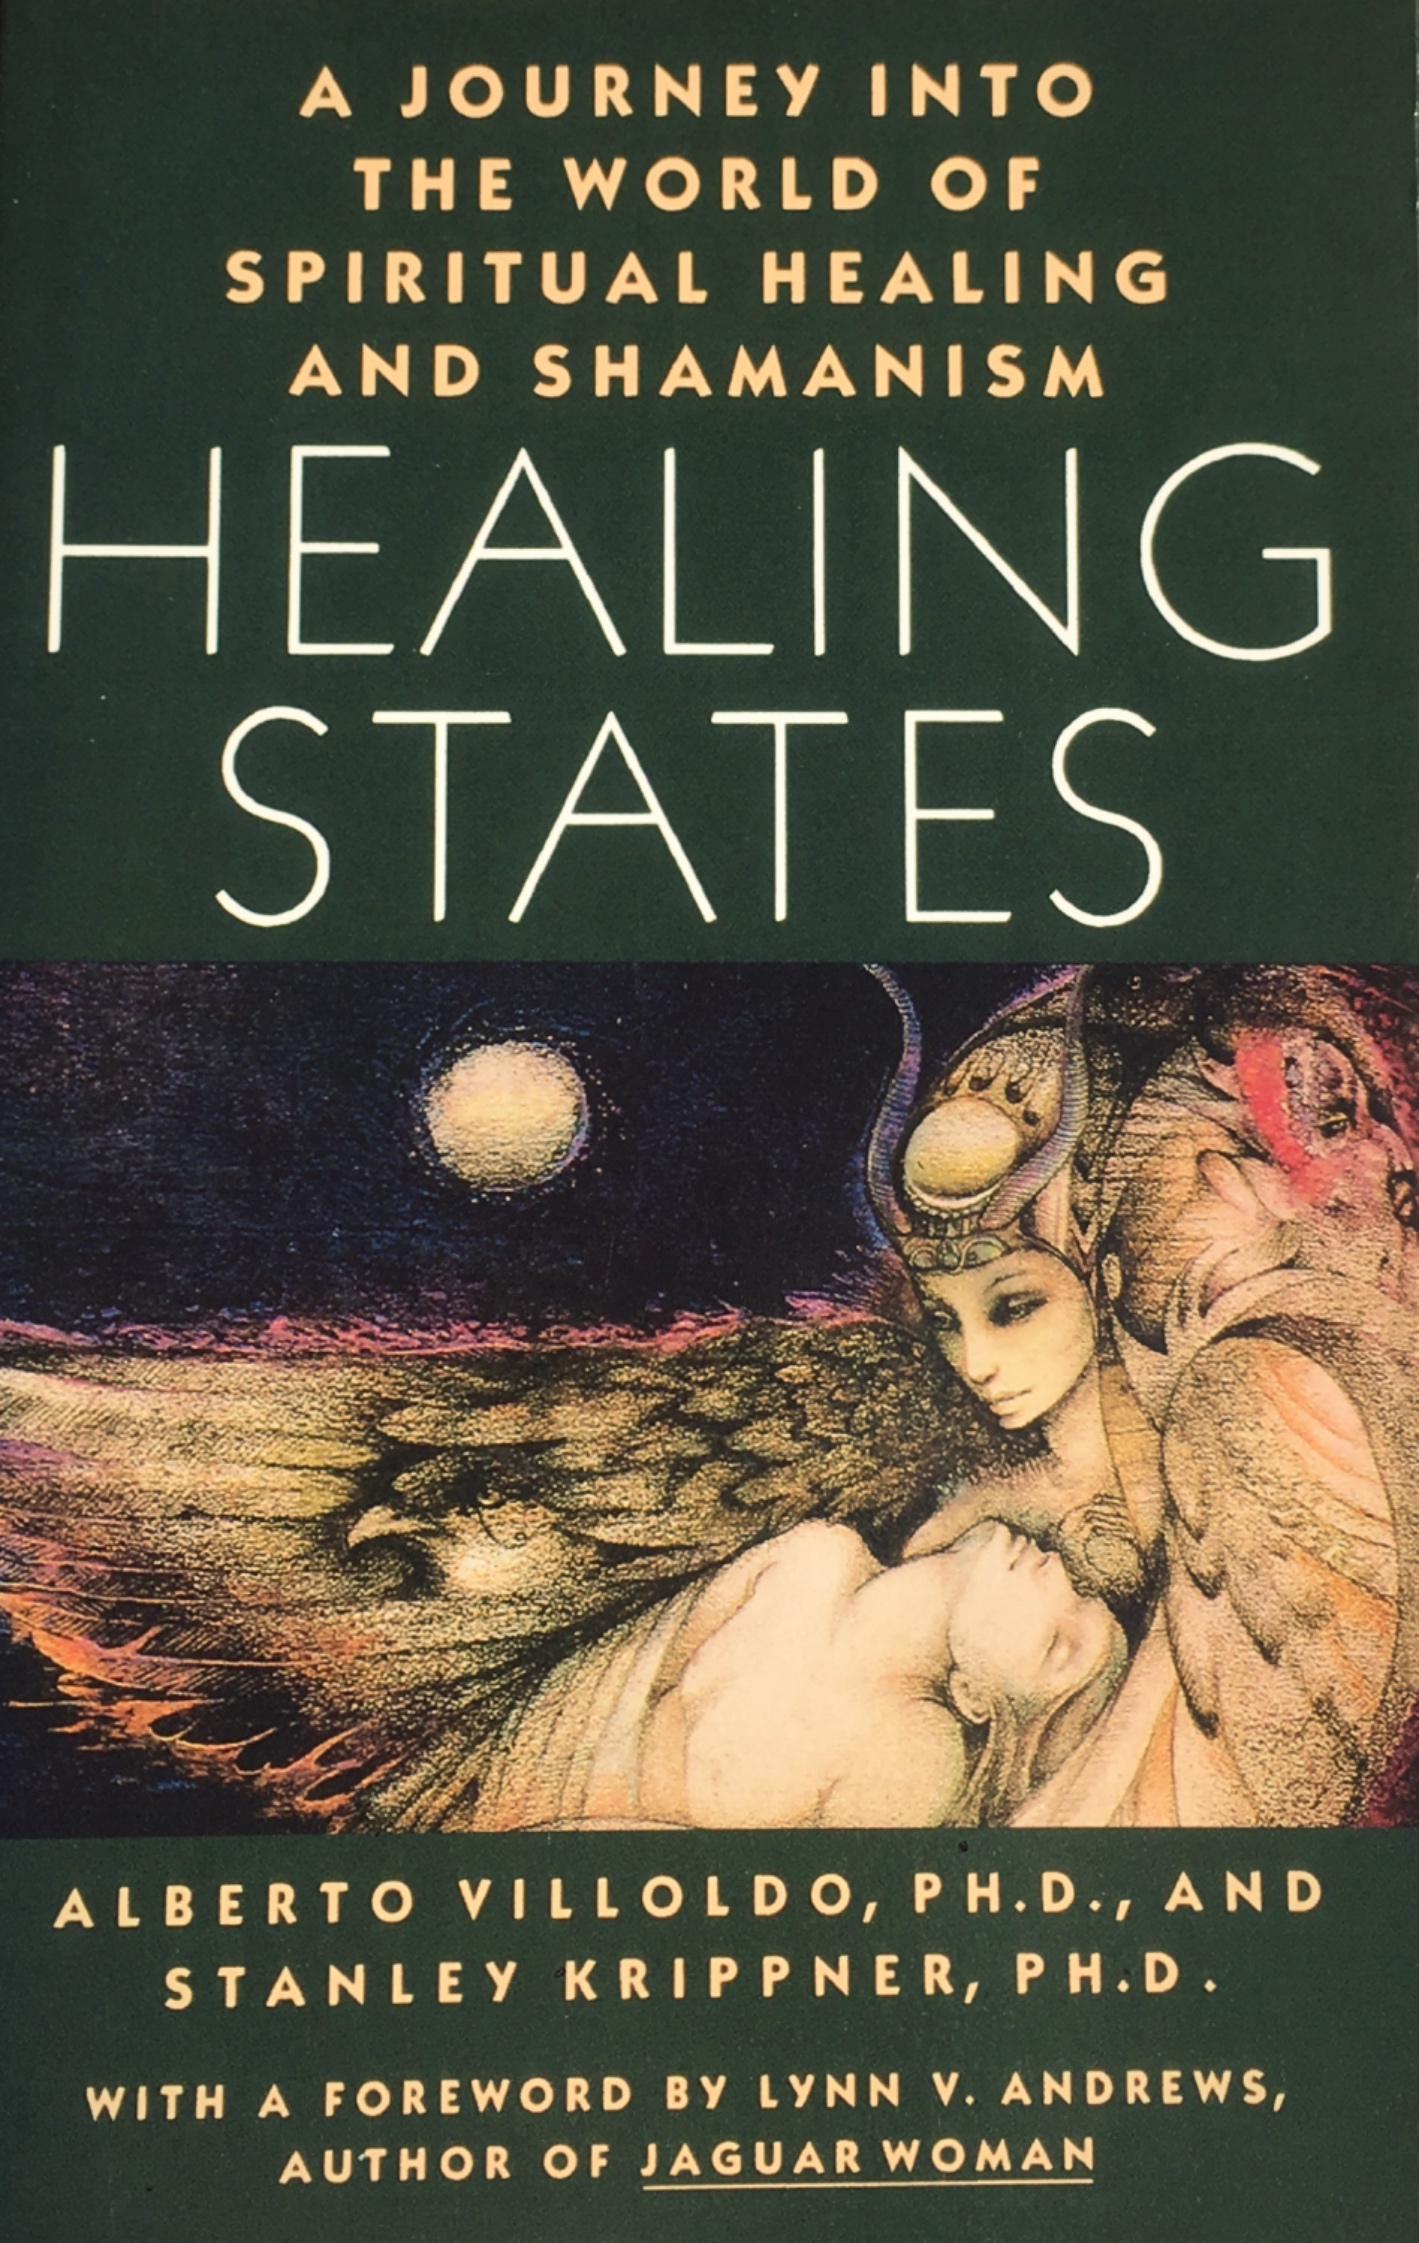 A Journey into the world of Spiritual Healing and Shamanism Healing States BOOK.jpg